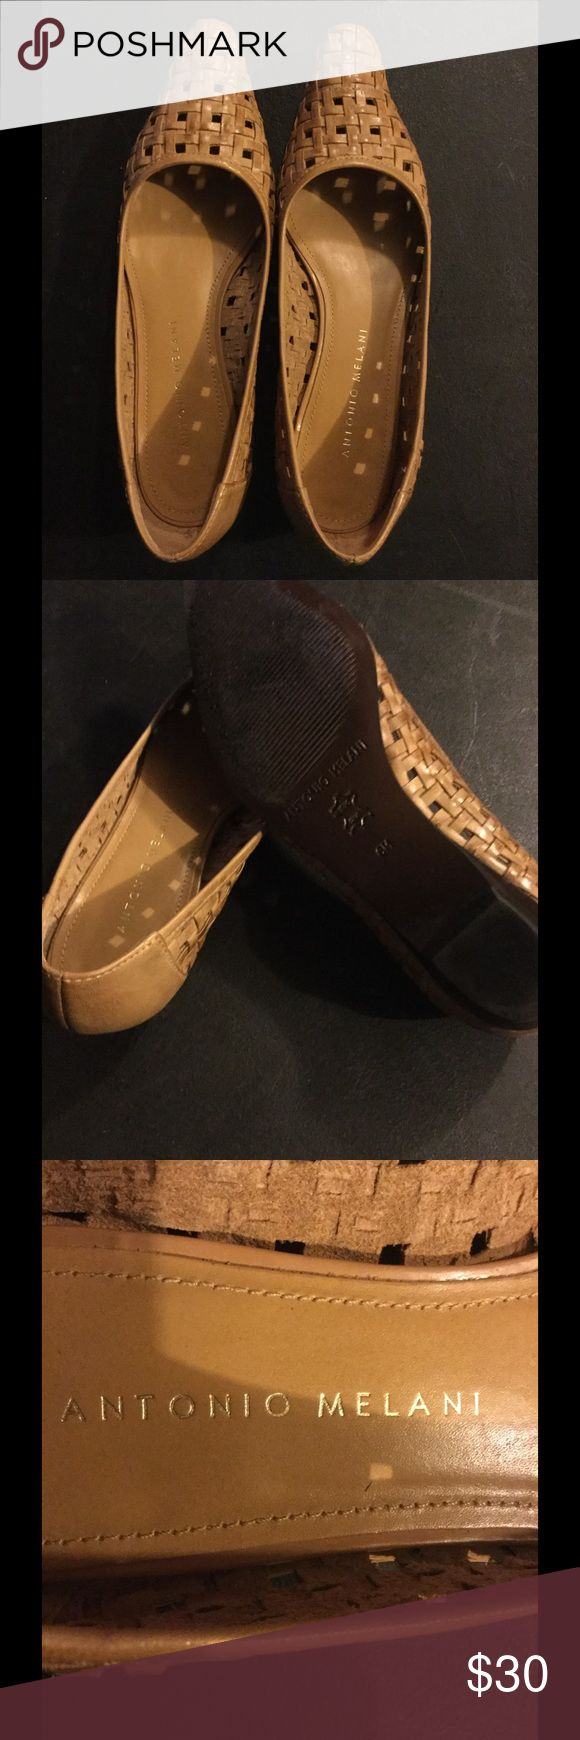 Antonio Melani pointed toe weaved flats Antonio Melani shoes. Brand new without box, but in perfect condition. These are a stylish shoe with a pointed tip and a weaved outside. ANTONIO MELANI Shoes Flats & Loafers